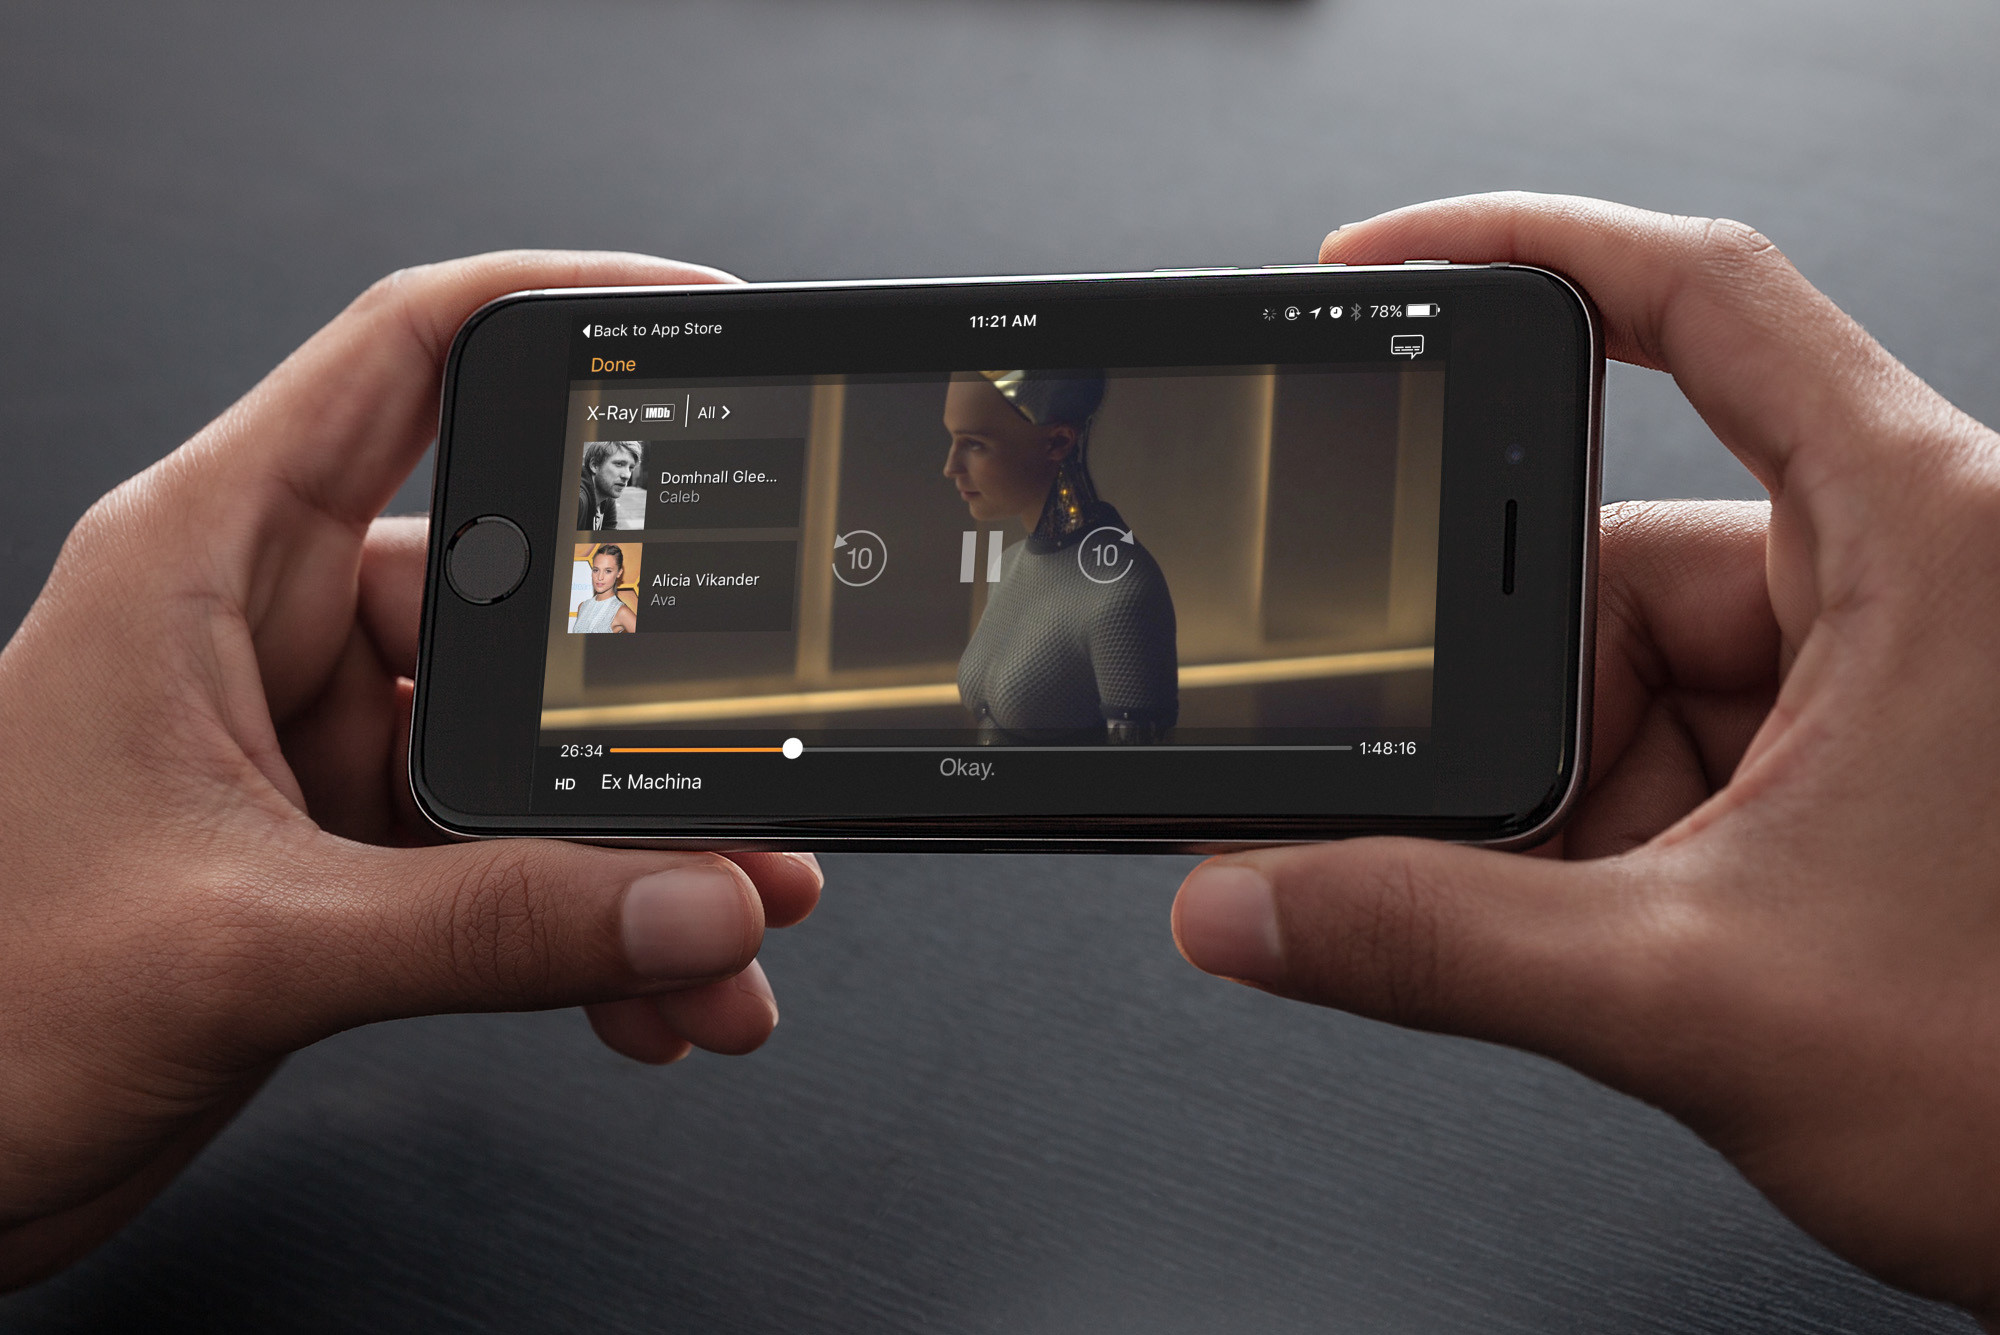 Enjoy X-Ray and more great new features on Amazon Video for iOS